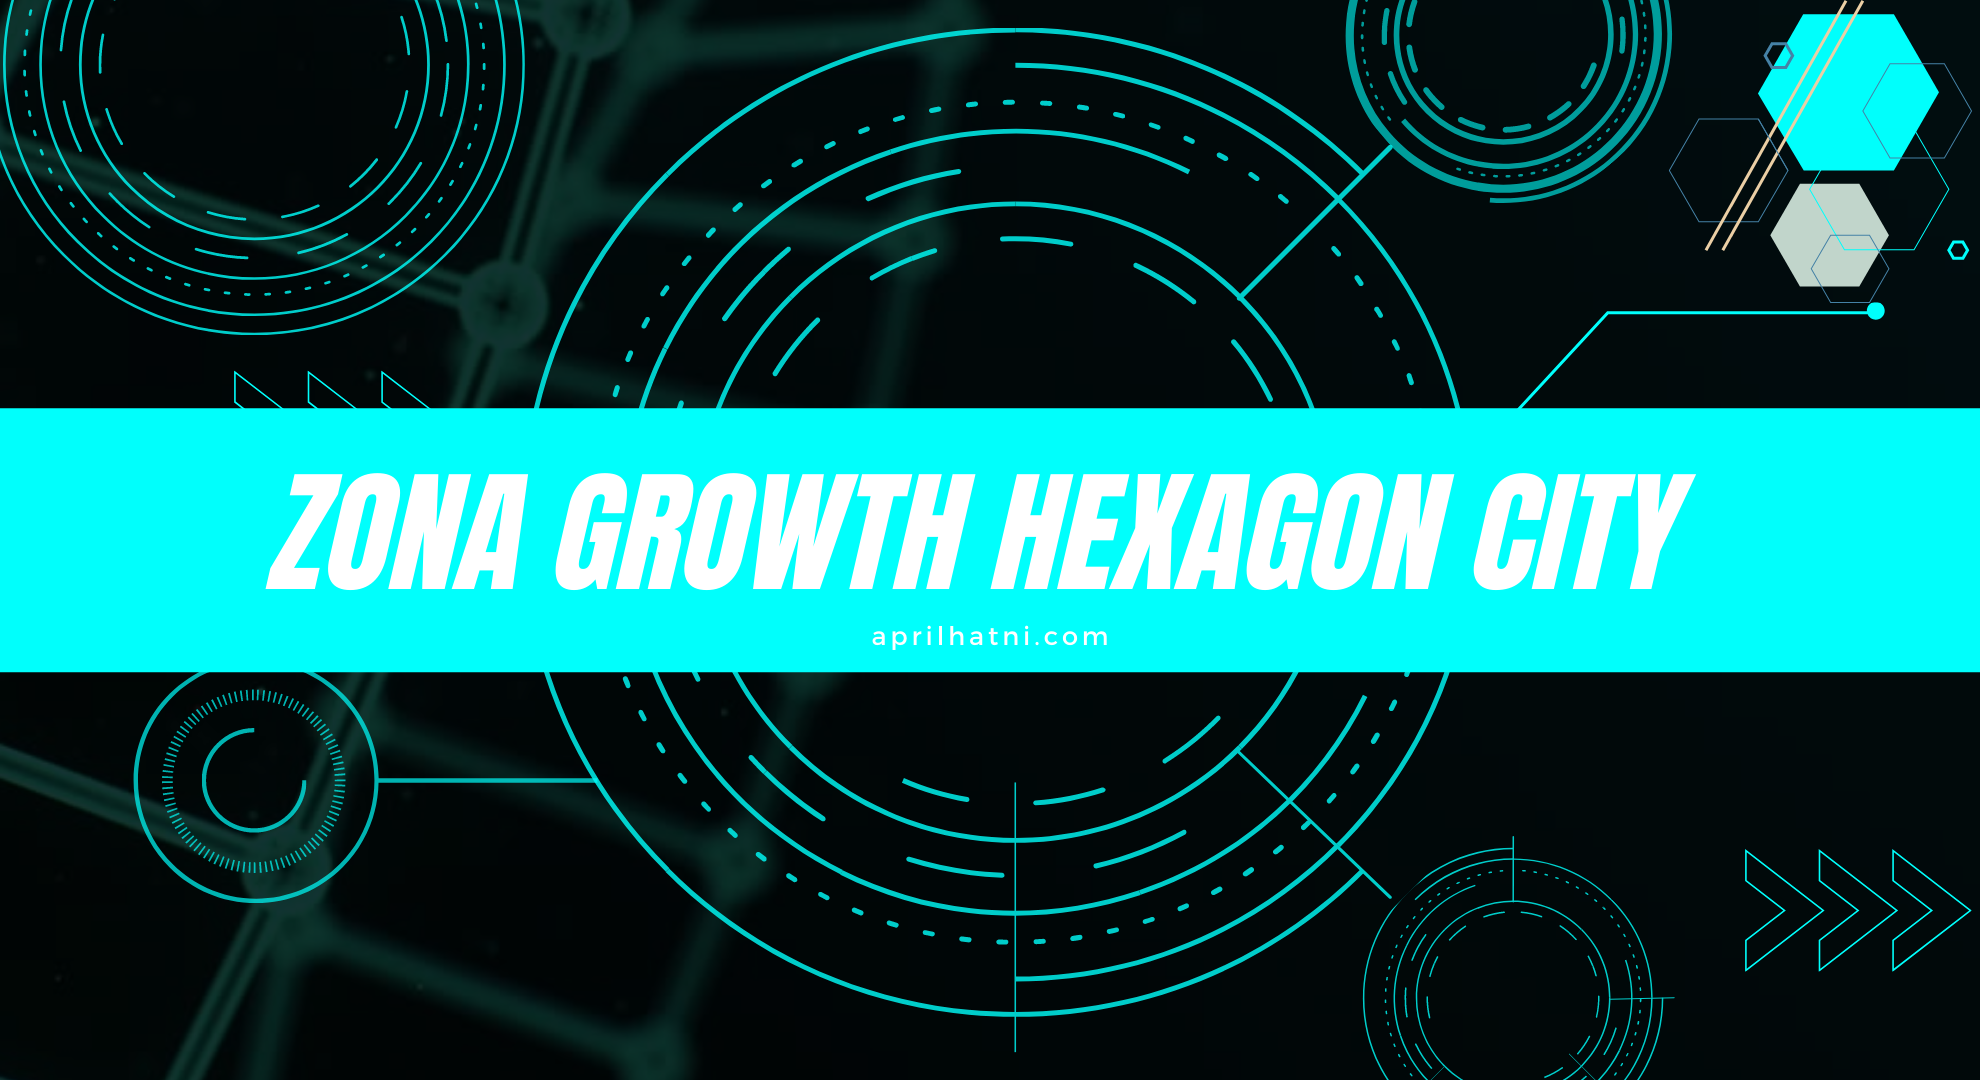 zona growth hexagon city